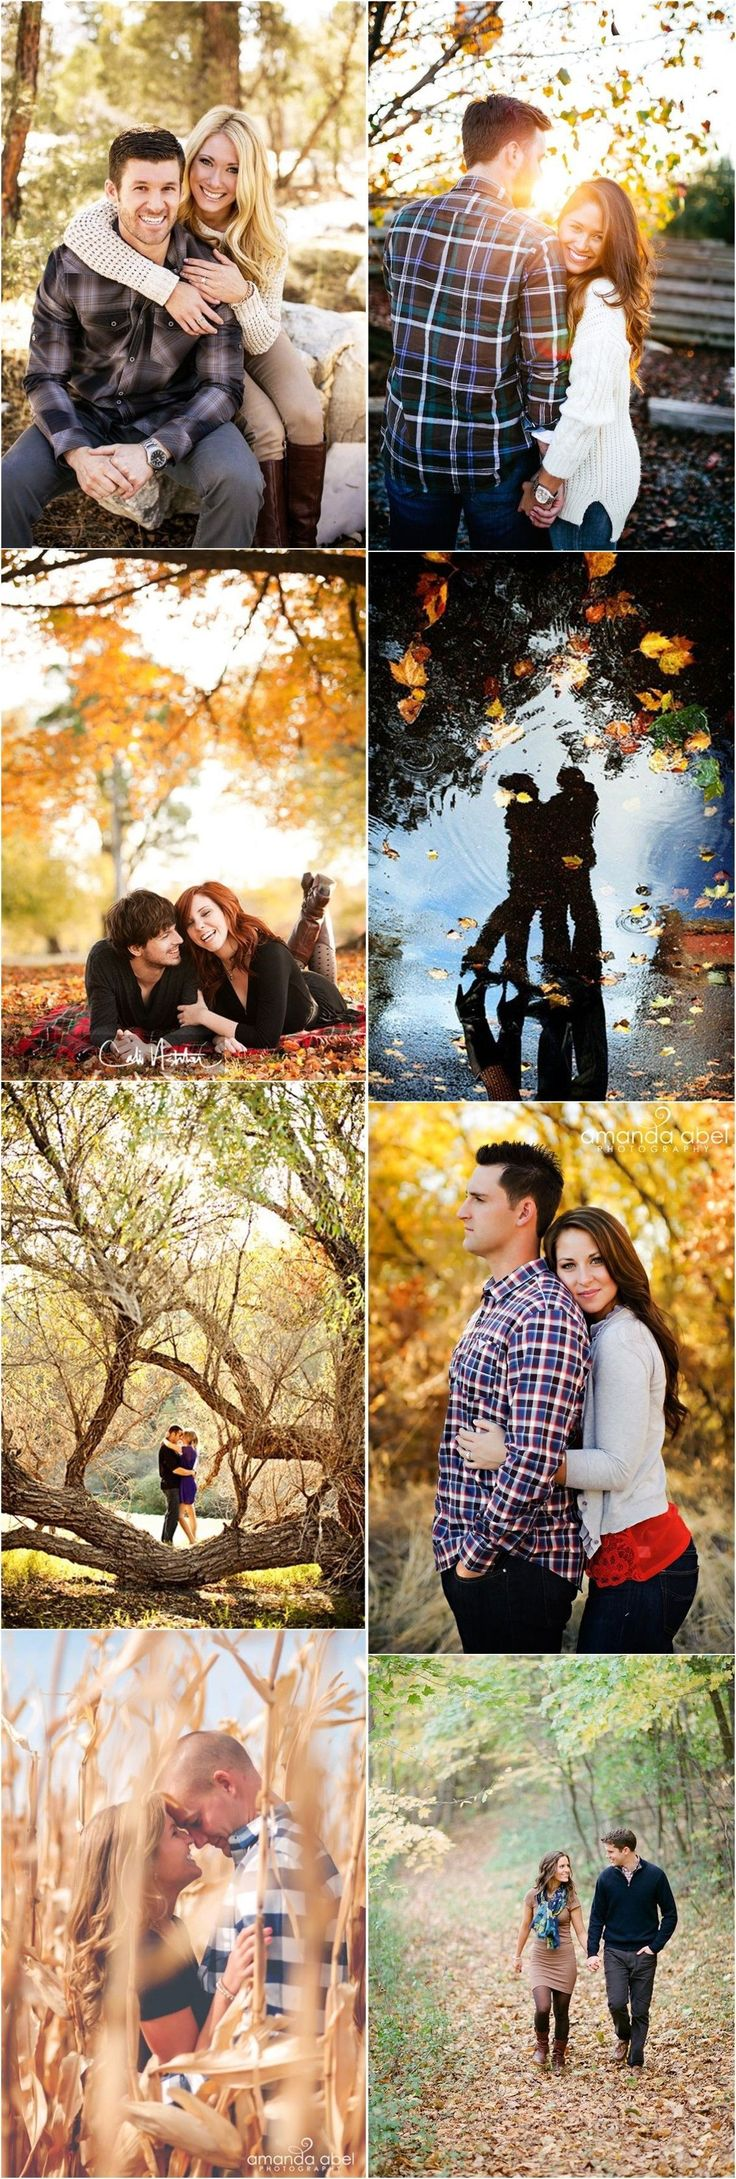 Engagement Photos » 23 Creative Fall Engagement Photo Shoots Ideas I Should've Had Myself! » ❤️ More: http://www.weddinginclude.com/2017/06/creative-fall-engagement-photo-shoots-ideas/ #Couplephotos